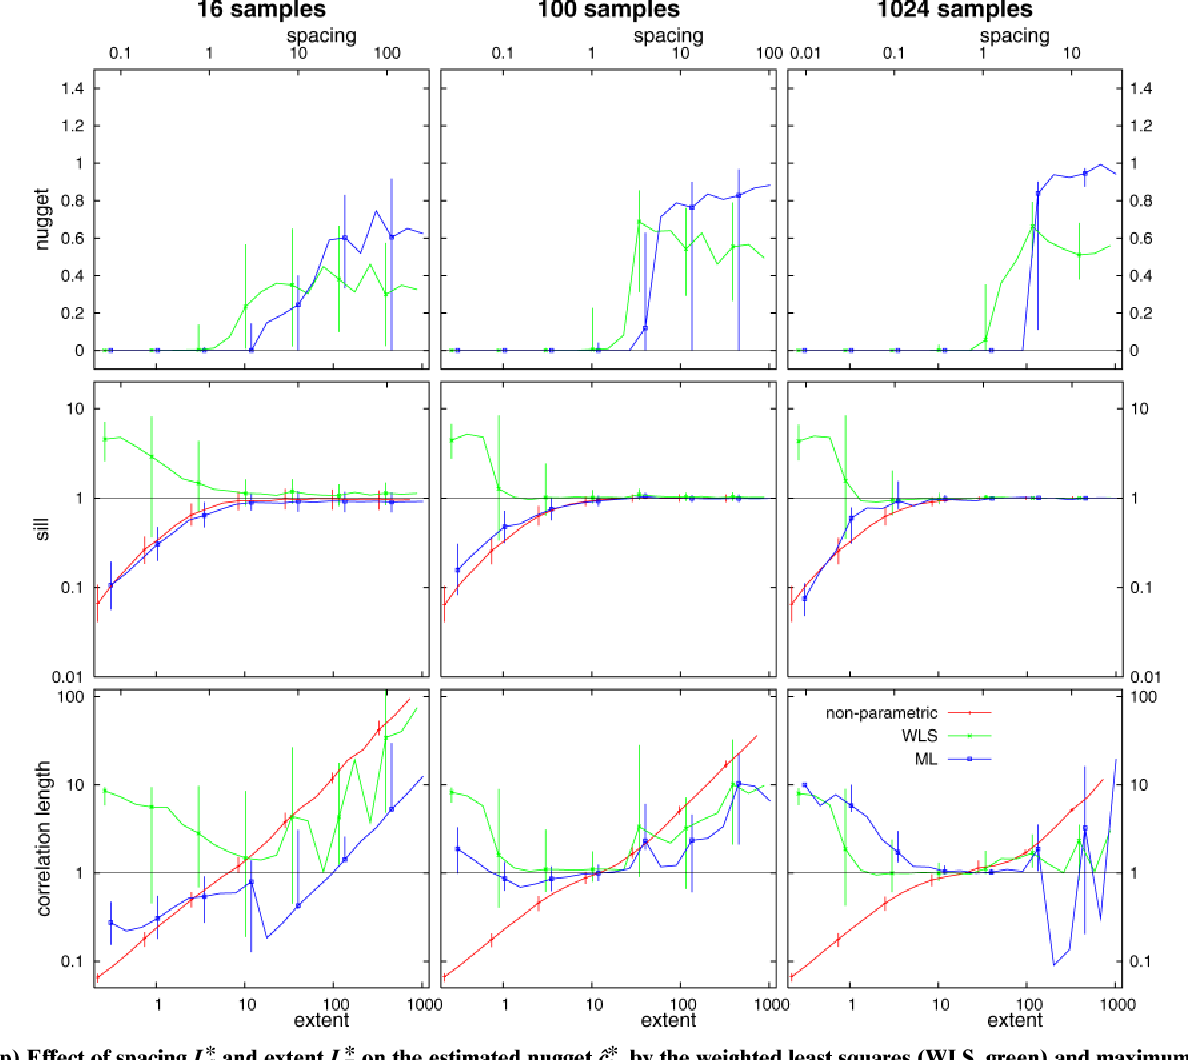 Fig. 7. (Top) Effect of spacing LS* and extent LE* on the estimated nugget ĉ0*, by the weighted least squares (WLS, green) and maximum likelihood (ML, blue) methods. (Middle) Effect of spacing LS* and extent LE* on the estimated sill ĉs* (WLS green, ML blue) and the sample variance s2* (red). (Bottom) Effect of spacing LS* and extent LE* on the estimated correlation length l̂* (WLS green, ML blue) and the integral scale Ĵ* (red). Gridded sampling (median with 25 and 75% quantiles as error bars). All are for the three-parameter model.